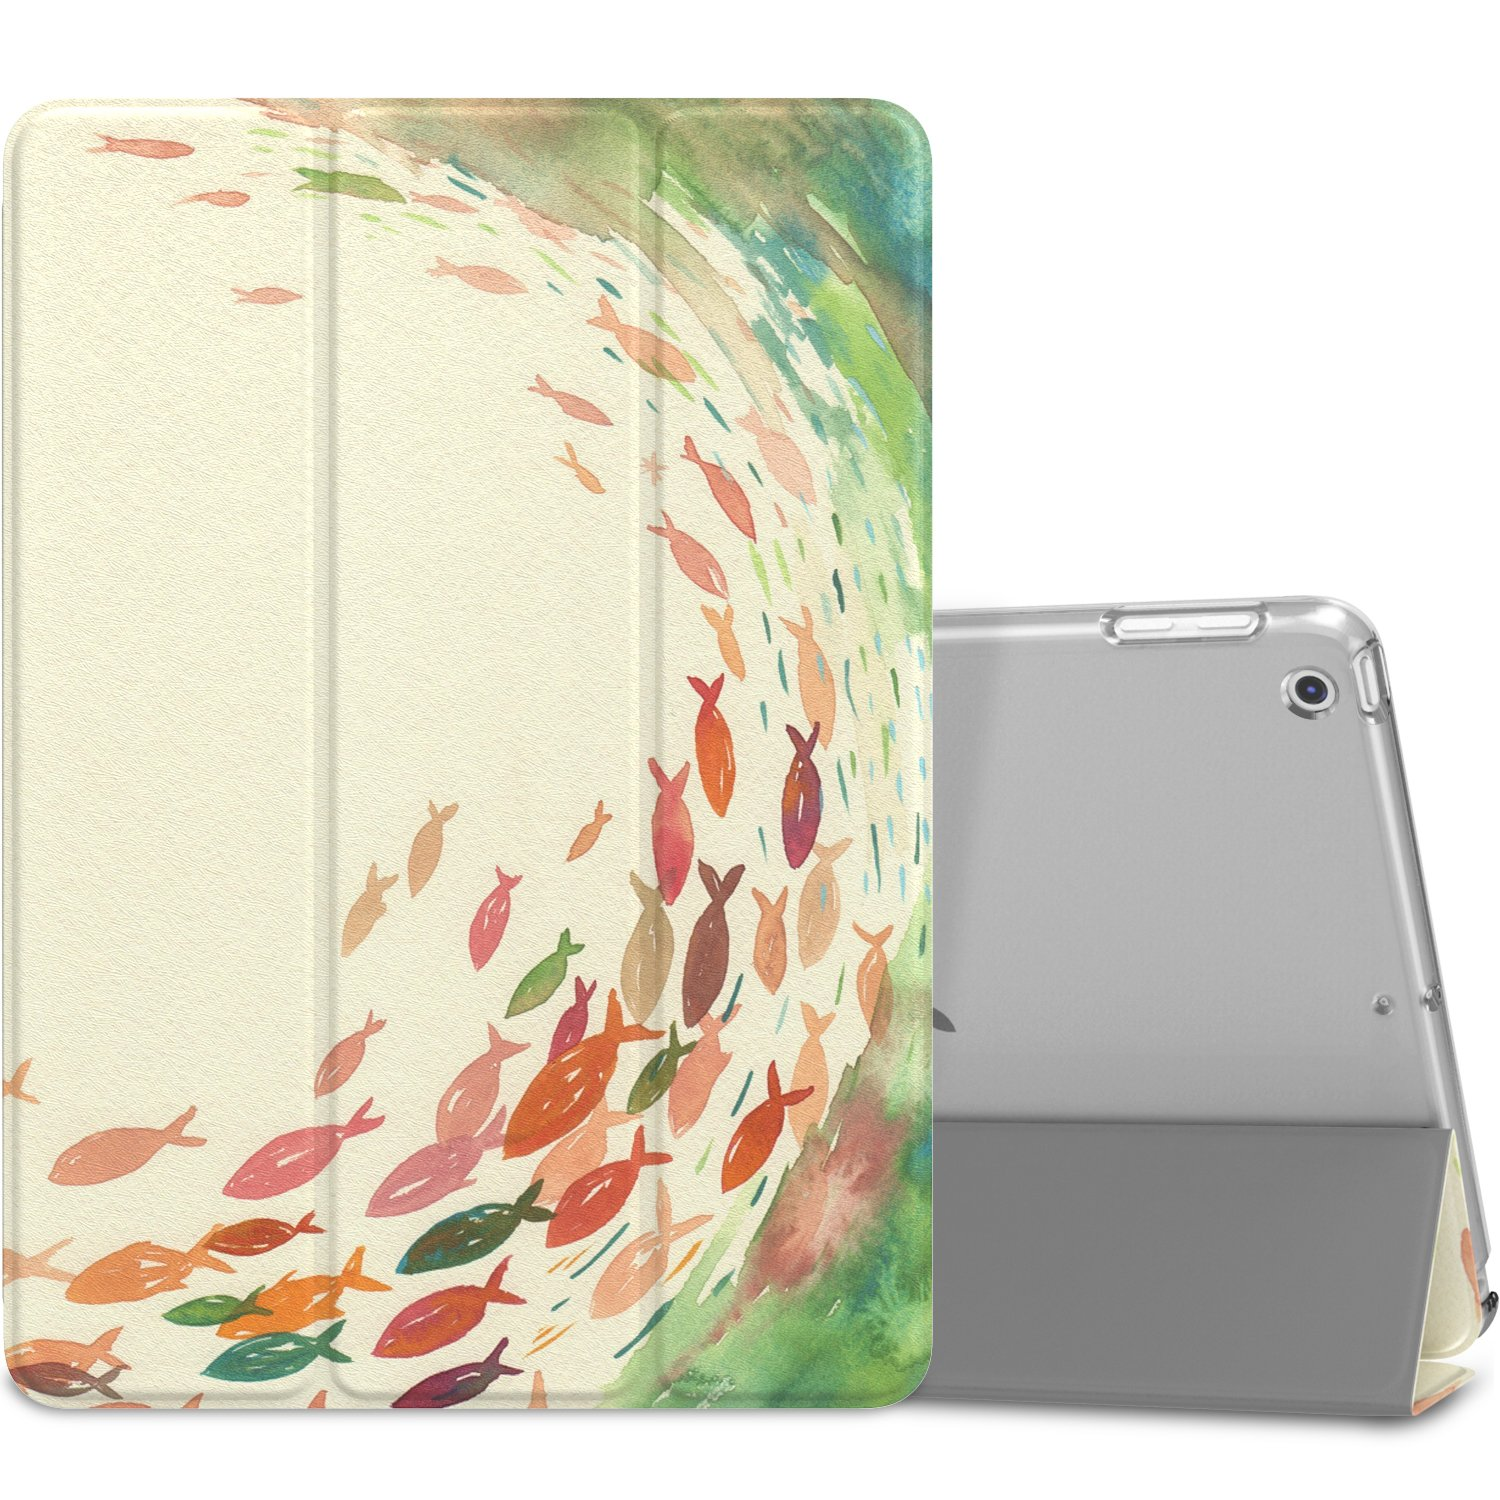 """MoKo Case Fit 2018/2017 iPad 9.7 6th/5th Generation, Slim Lightweight Smart Shell Stand Cover with Translucent Frosted Back Protector Fit iPad 9.7"""" 2018/2017, School of Fish(Auto Wake/Sleep)"""